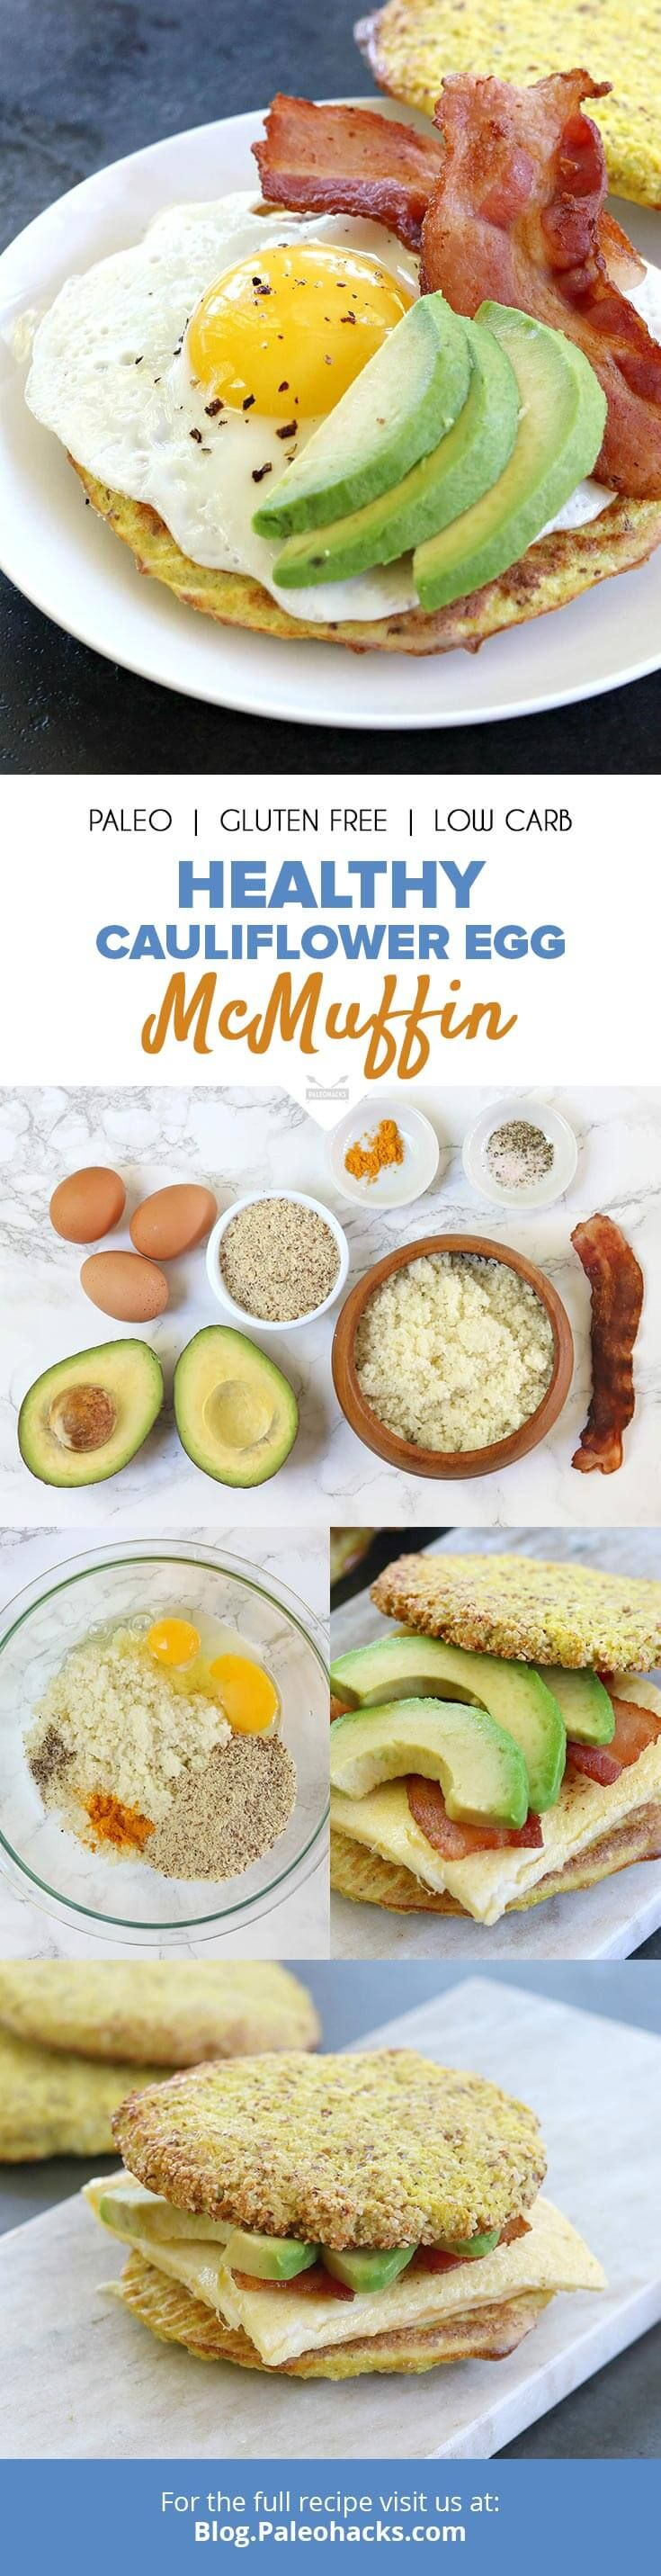 "The fast food breakfast sandwich you hate to love gets a Paleo  upgrade with turmeric-spiced cauliflower ""McMuffins"" stuffed with fresh eggs, bacon and slices of avocado. Get the recipe here: http://paleo.co/eggmcmuffin"